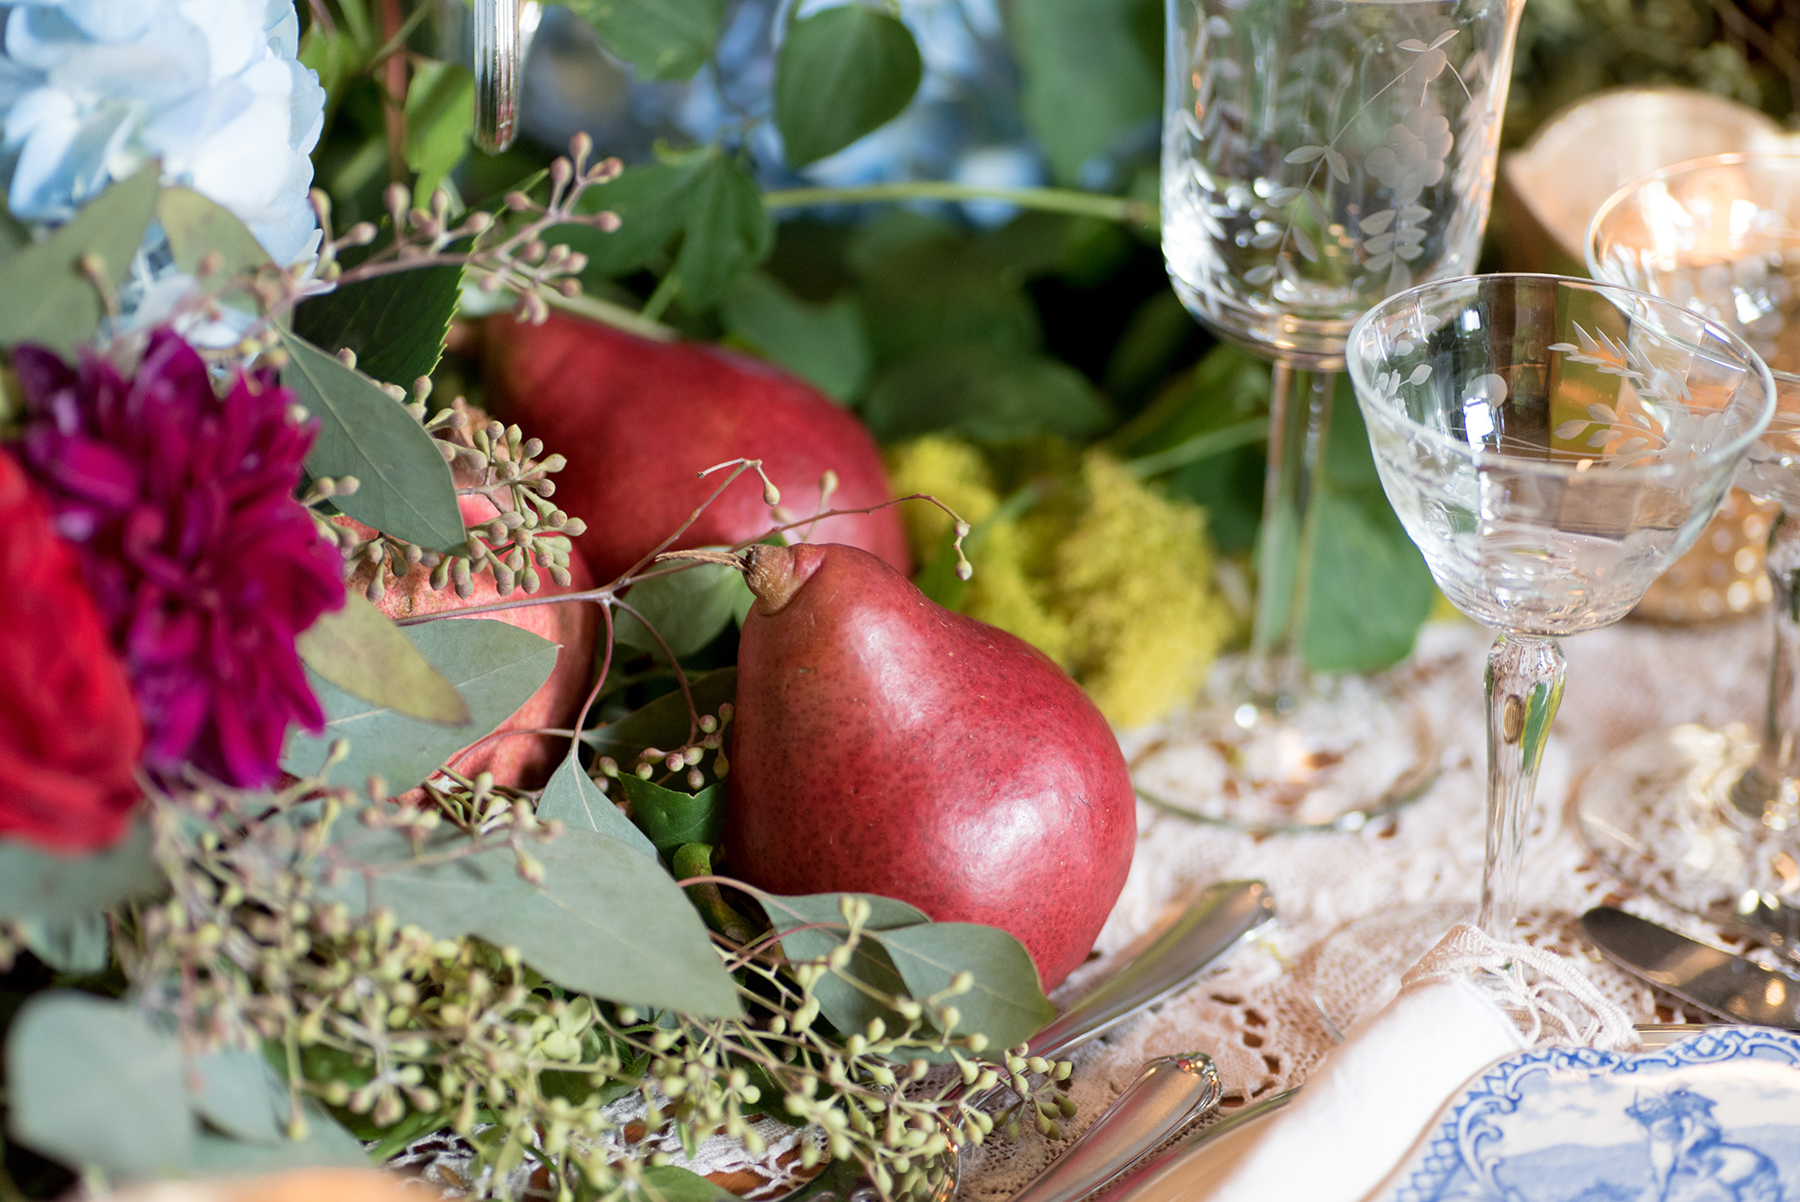 event-design-table-setting-detail-pears-fall-theme.jpg